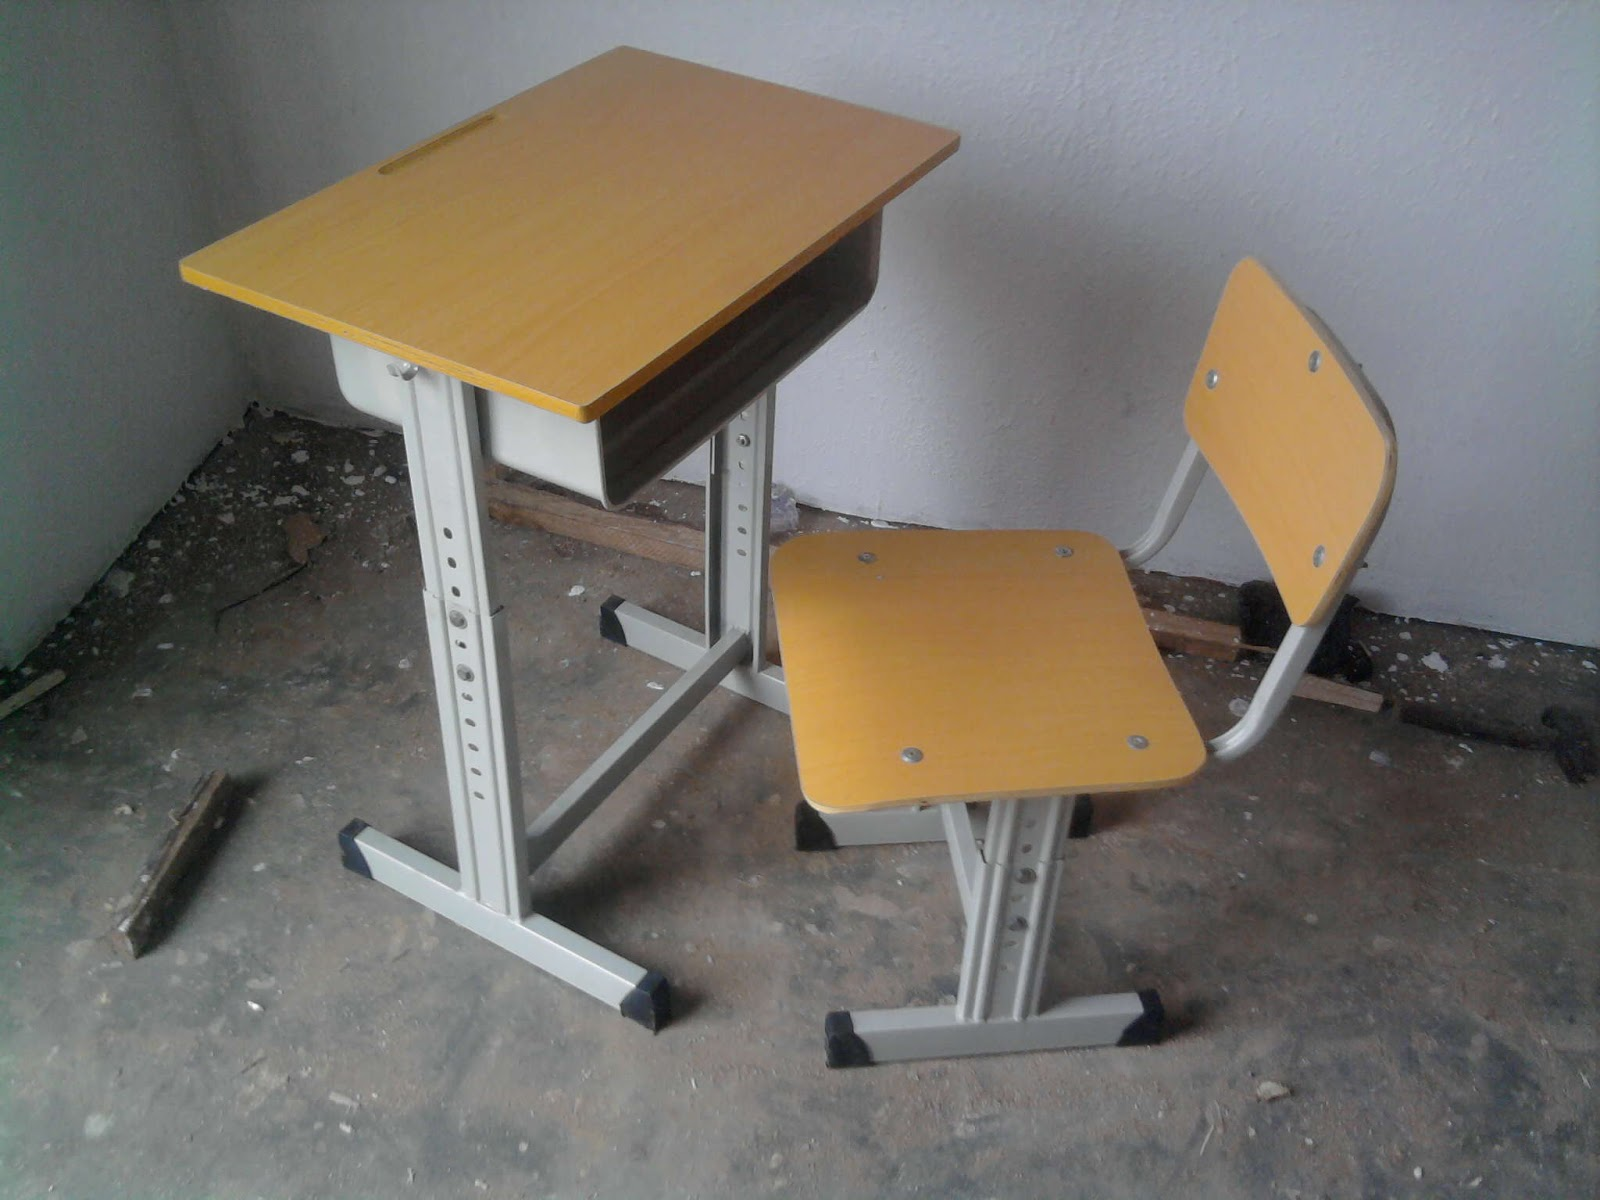 Classroom Furniture In Nigeria : New arrivals modern innovation classroom desks and chairs